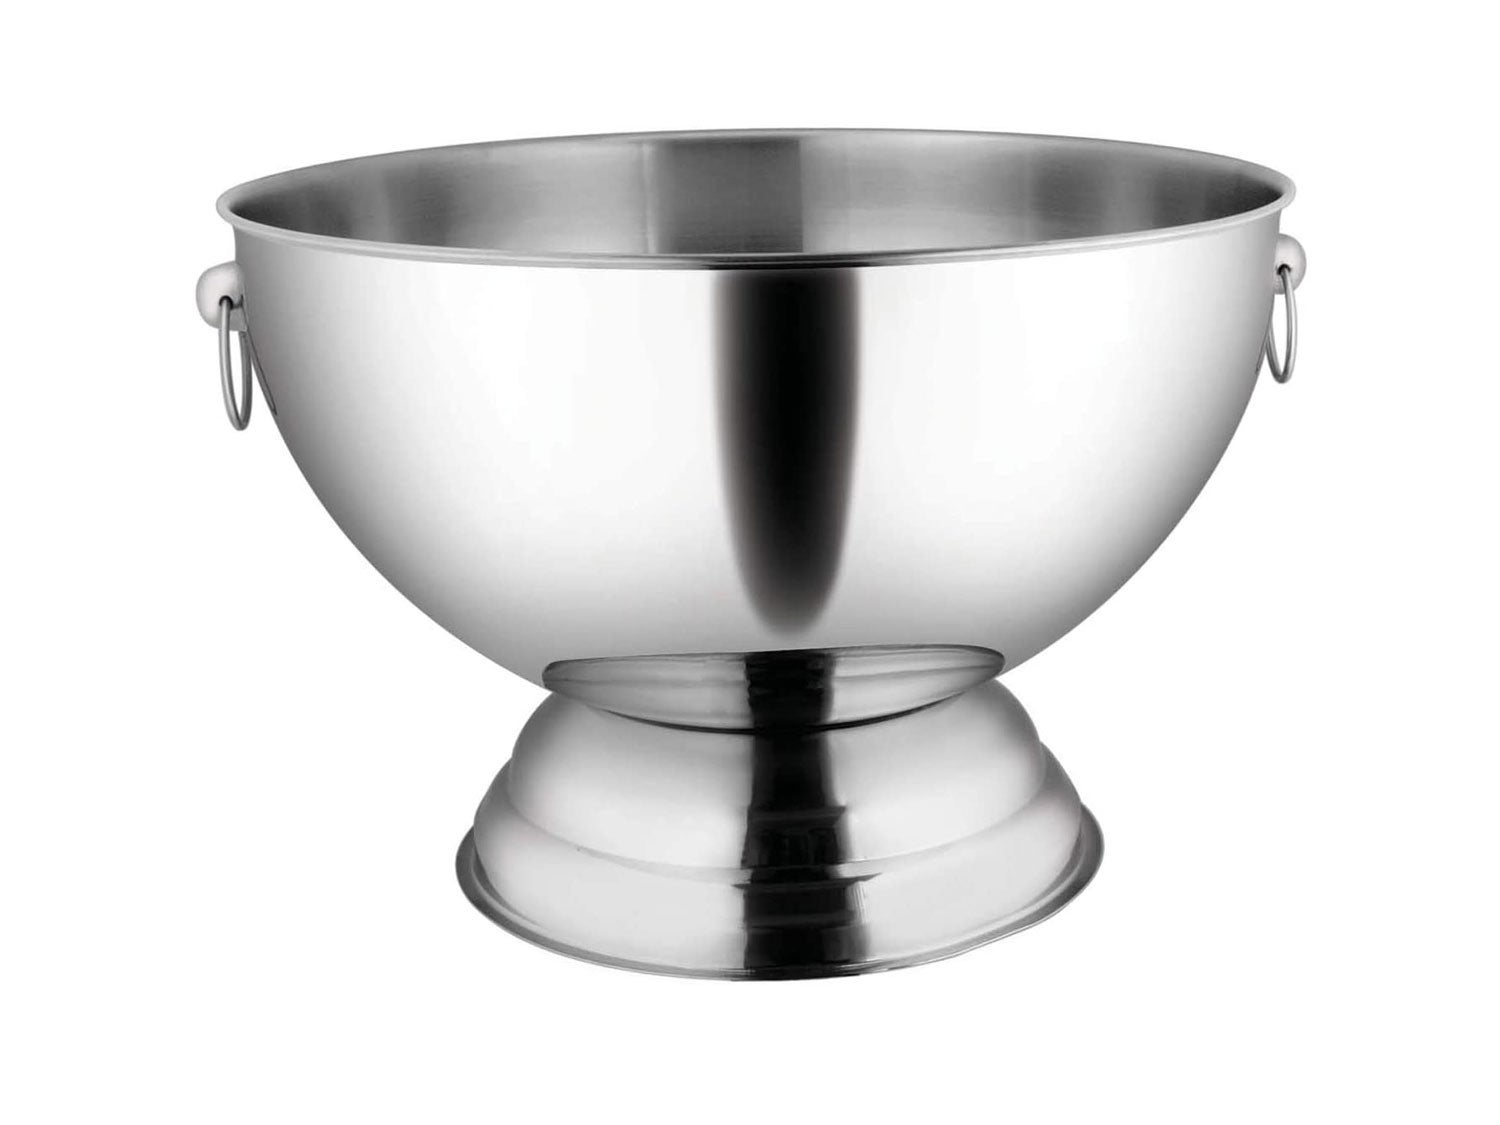 Winco Stainless Steel Punch Bowl with Handles